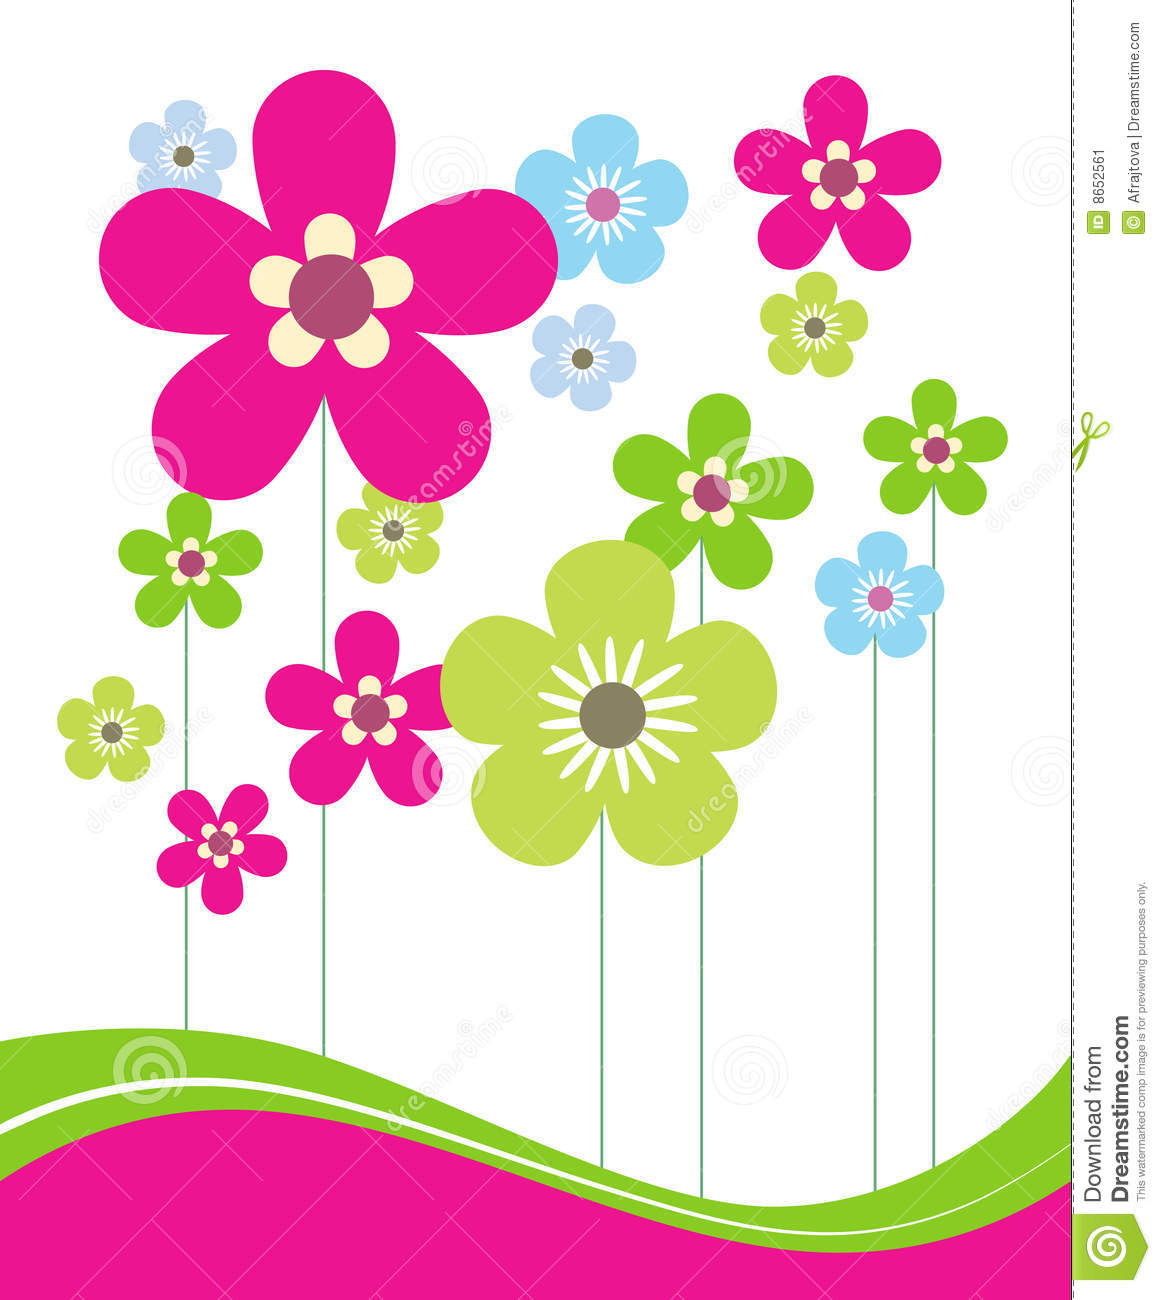 Pink And Green Spring Flowers Stock Vector Illustration Of Style